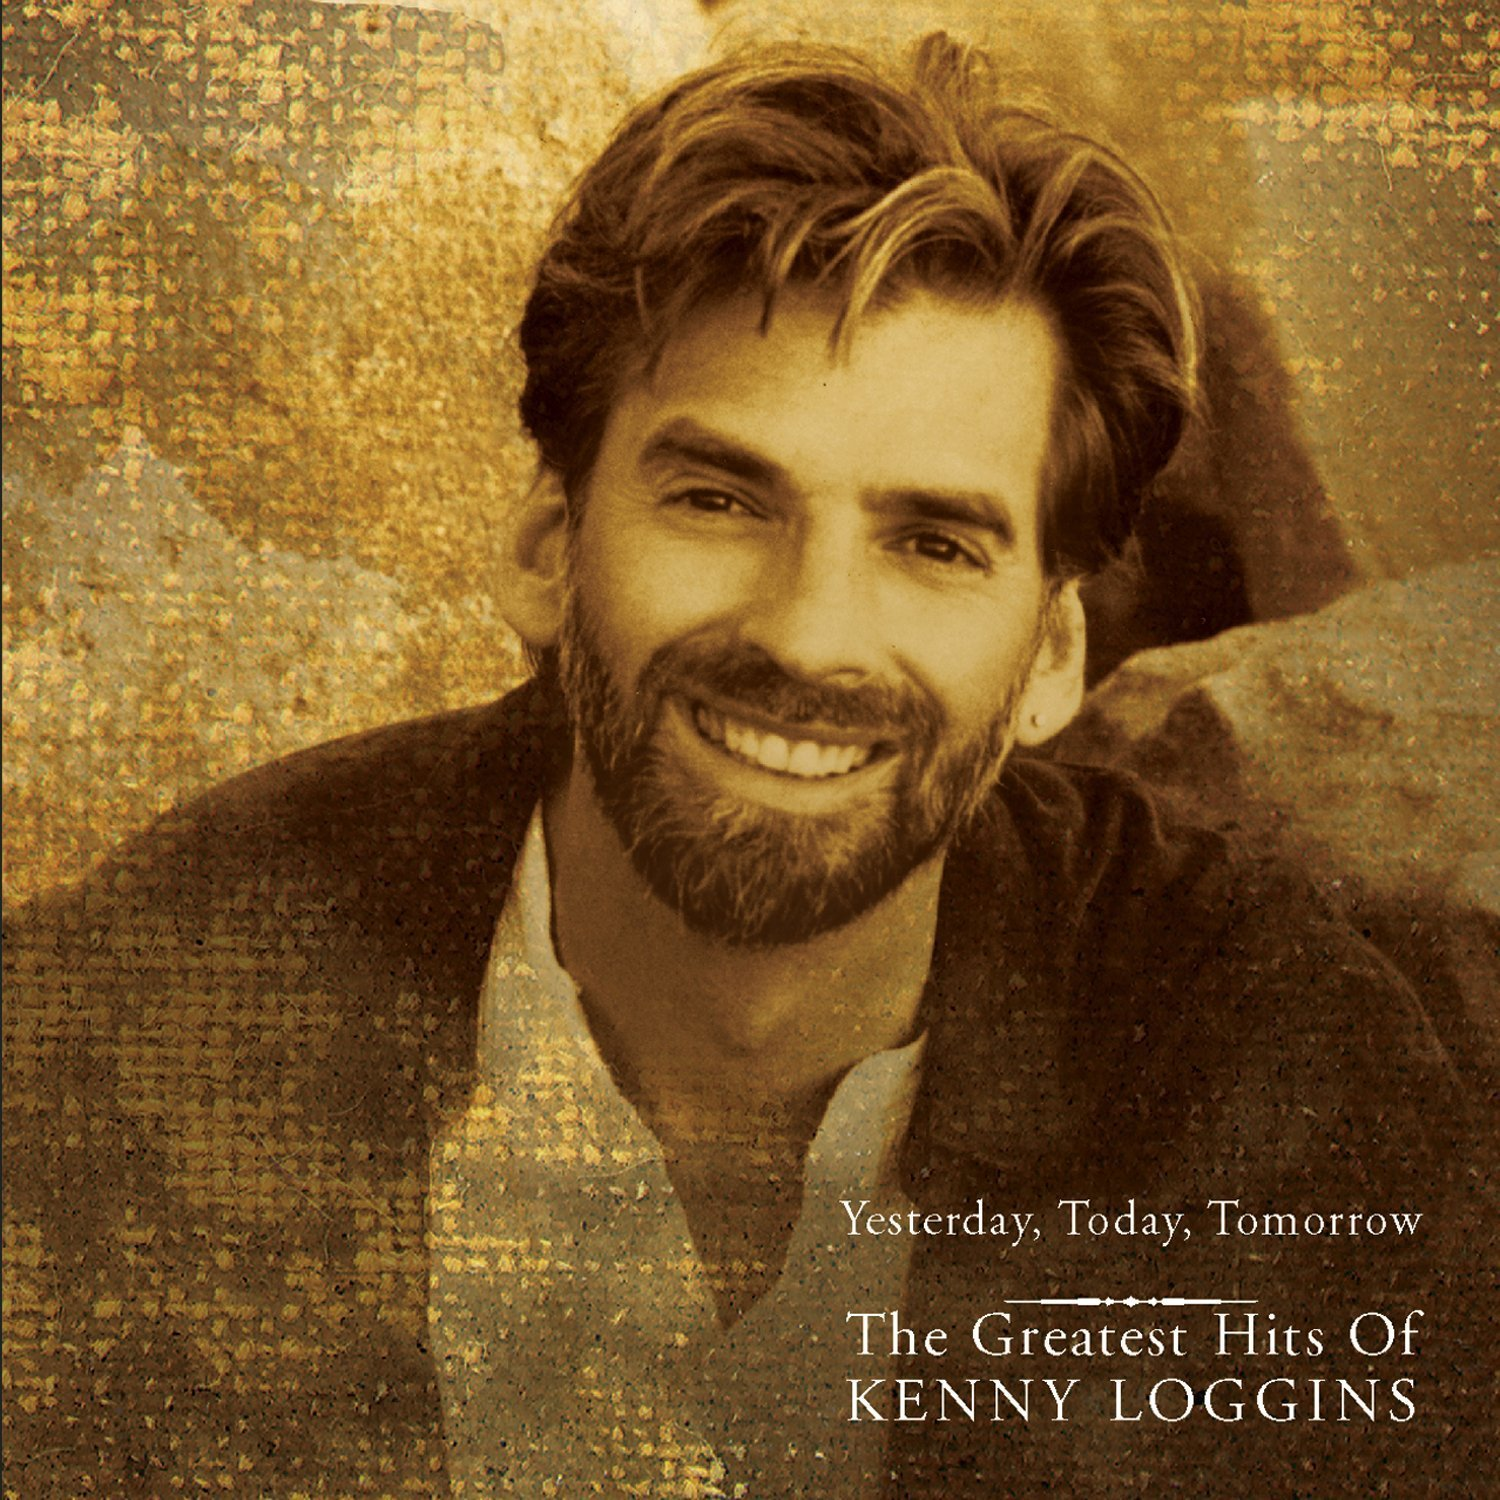 Yesterday, Today, Tomorrow: The Greatest Hits of Kenny Loggins Kenny Loggins